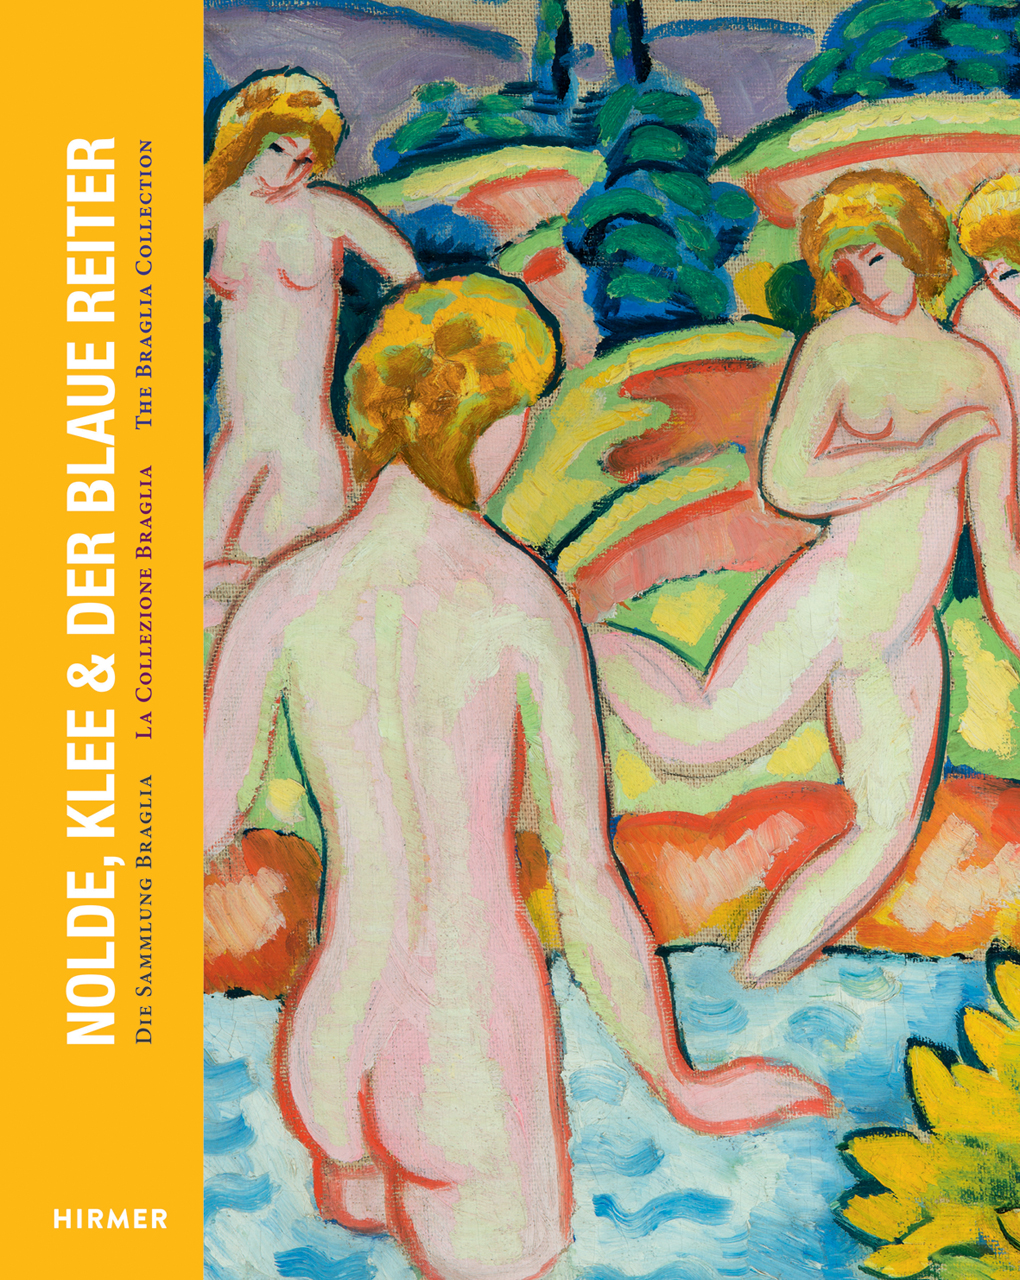 Nolde, Klee & Der Blaue Reiter: The Braglia Collection